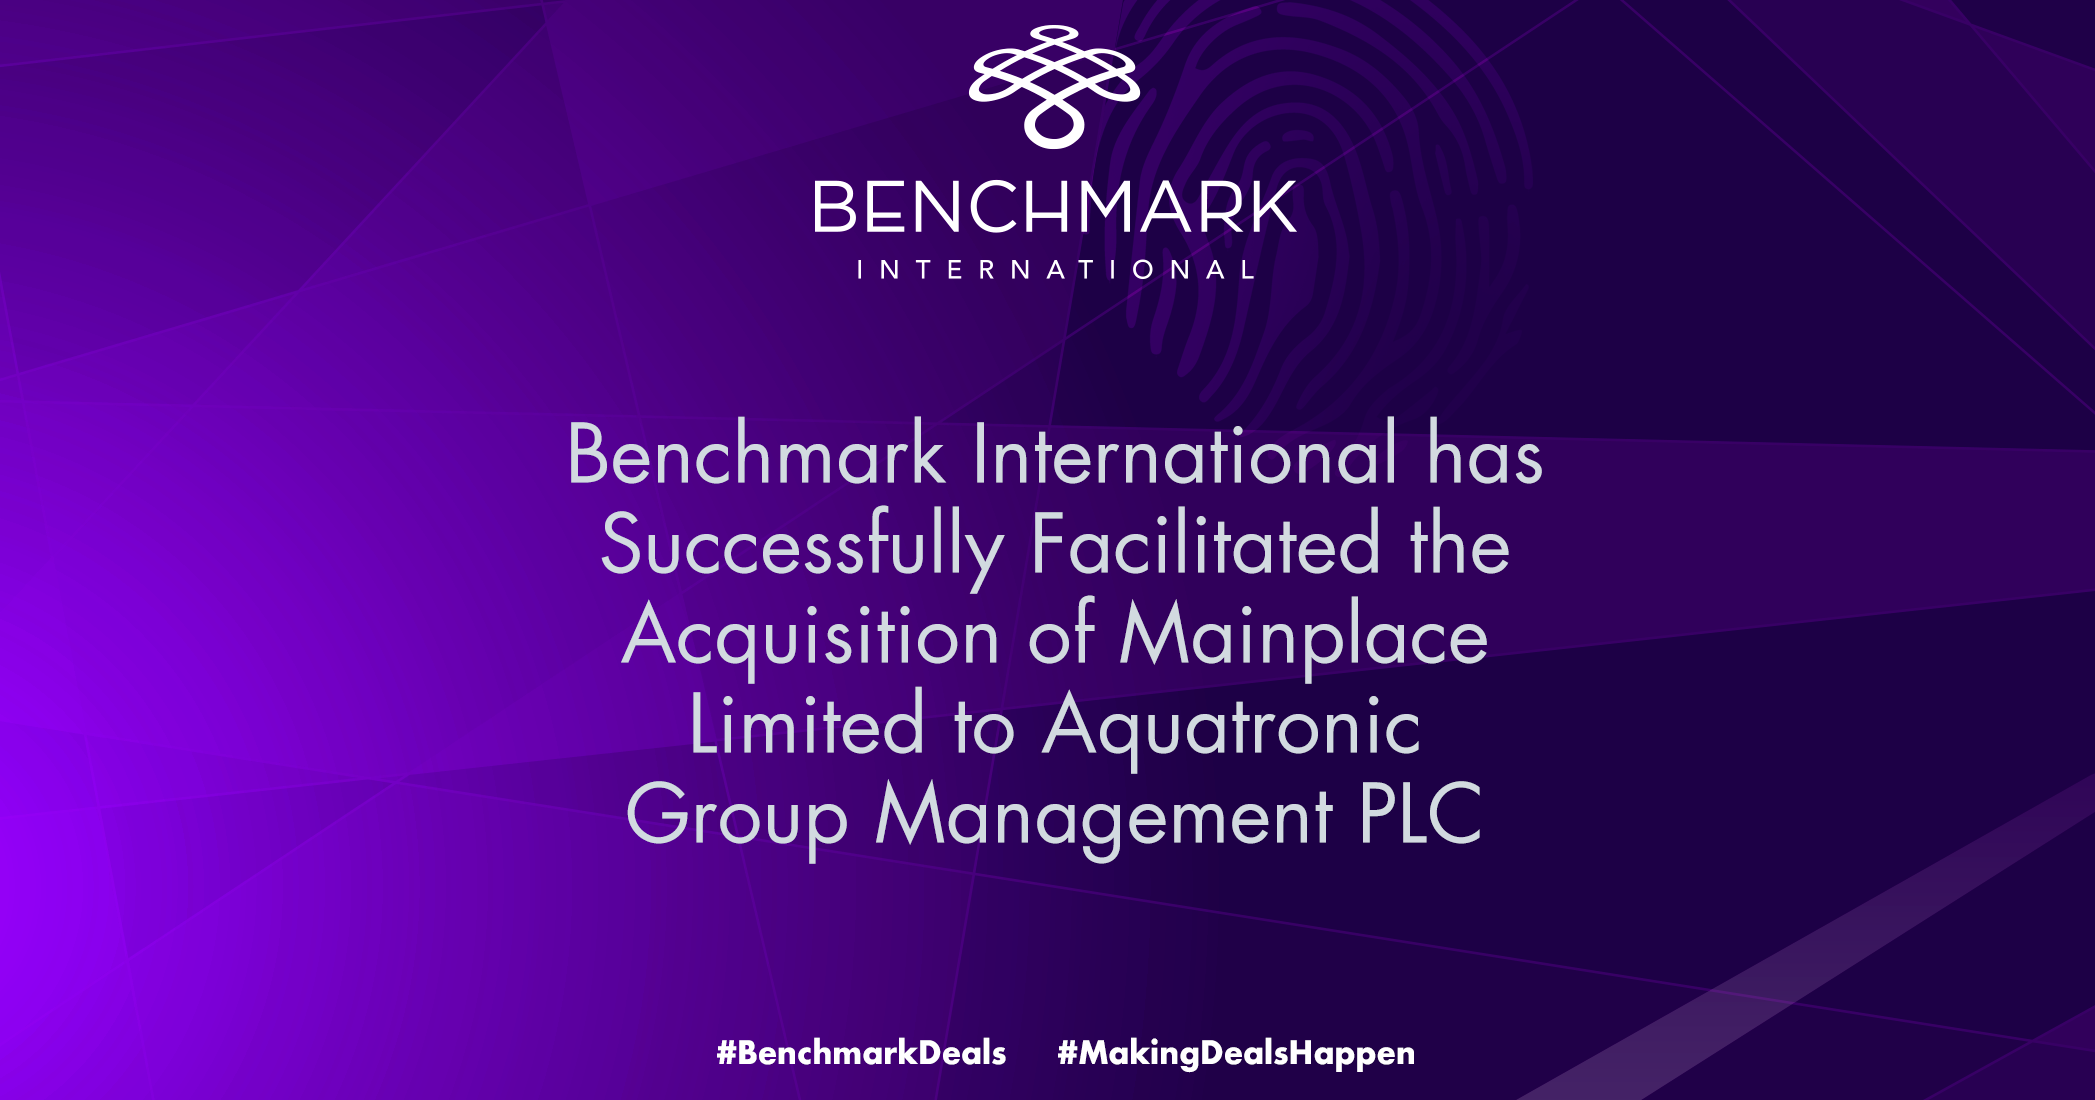 Benchmark International has Successfully Facilitated the Acquisition of Mainplace Limited to Aquatronic Group Management PLC